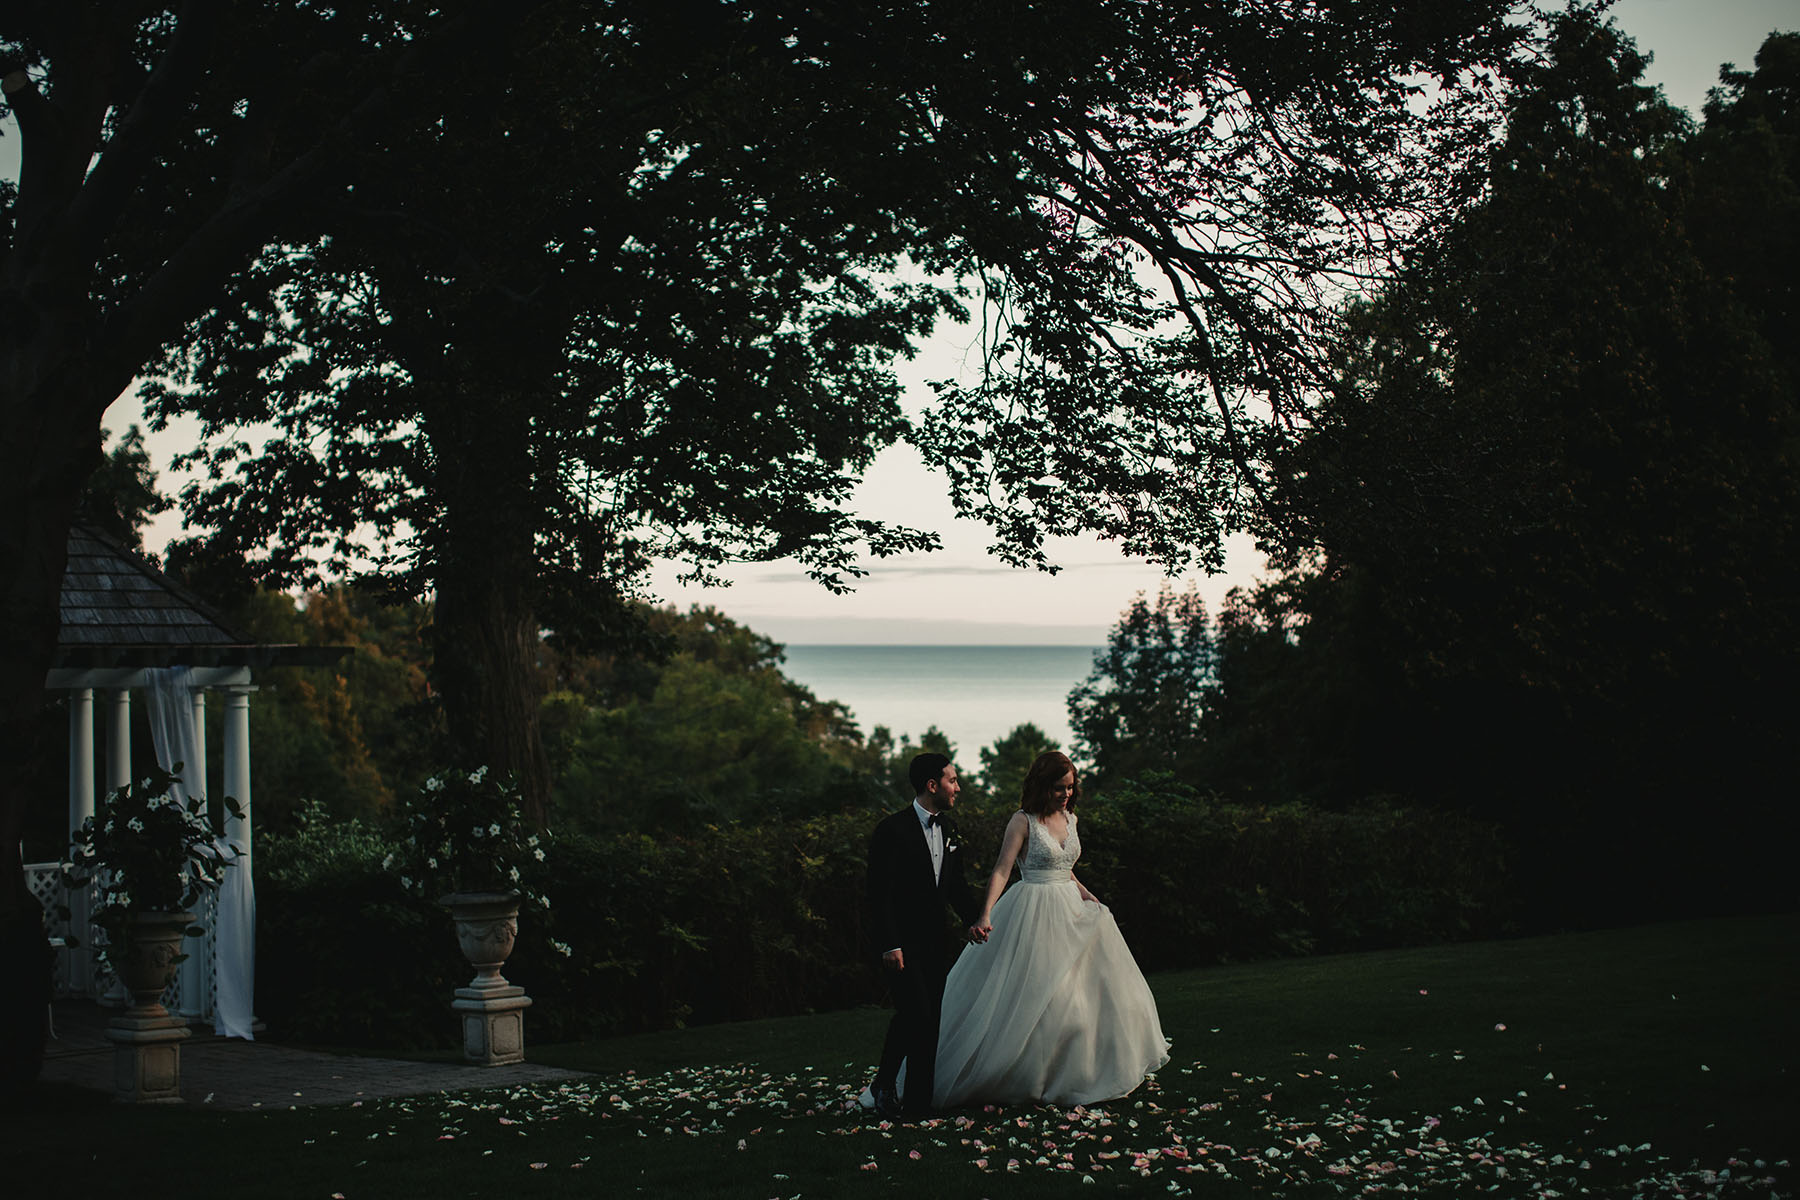 Beautiful setting of golf course over looking Lake Ontario. Bride and groom walking thru the grass.